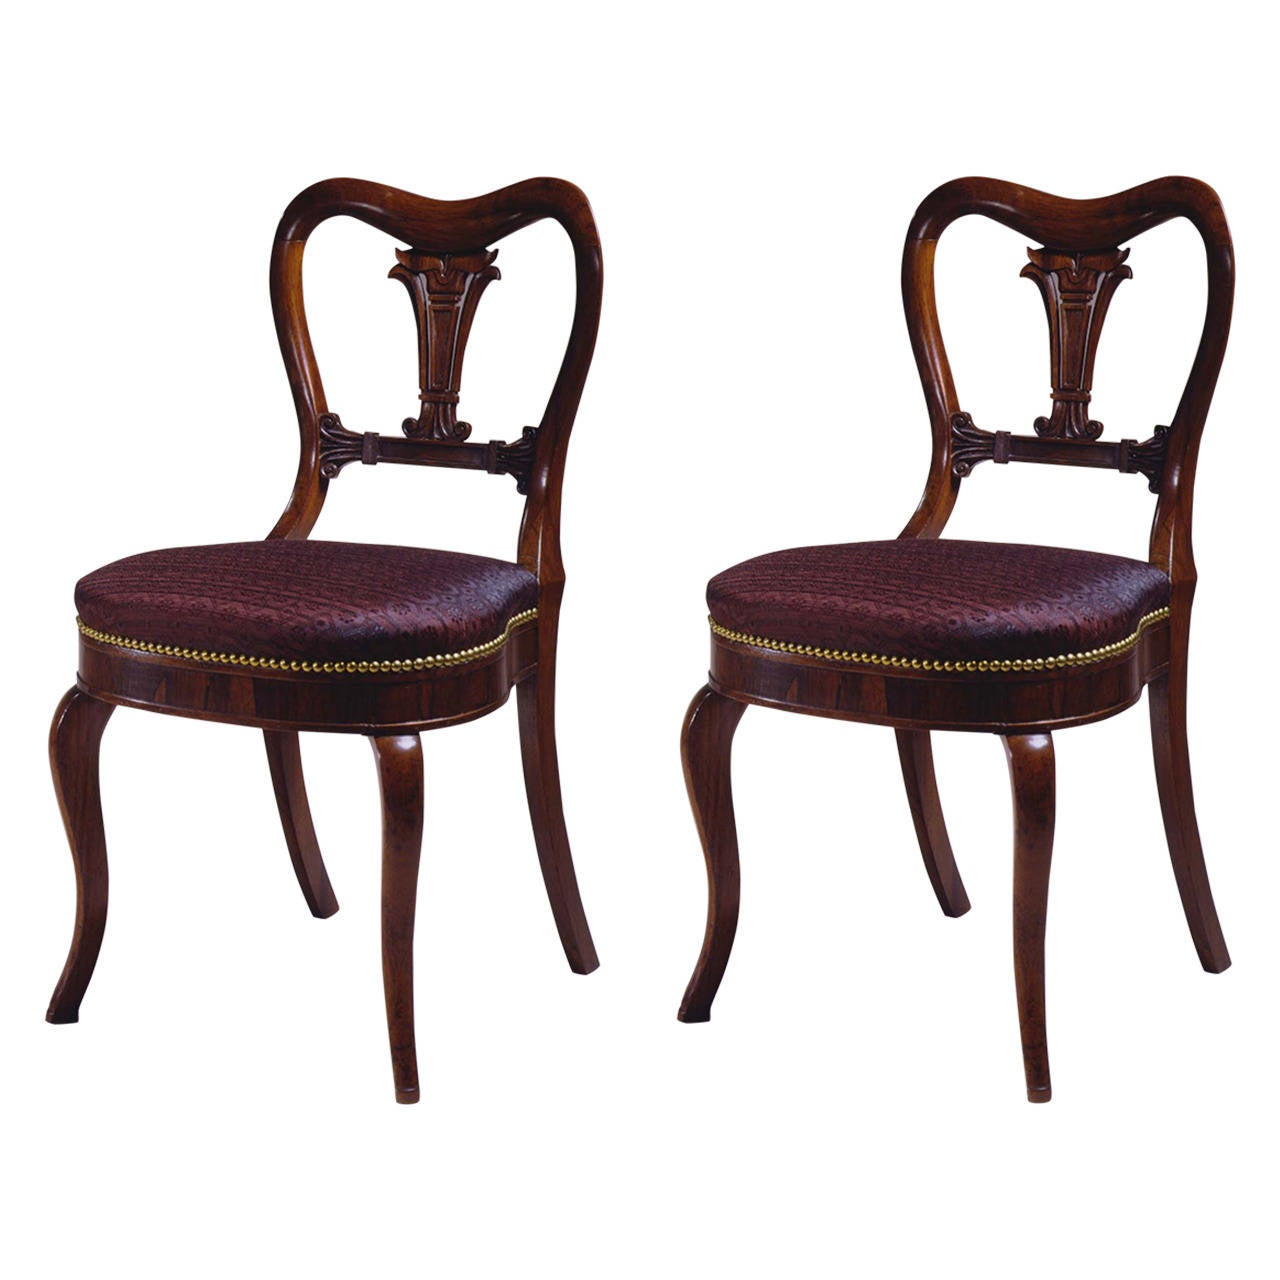 Duncan Phyfe lotus side chairs, 1835–45